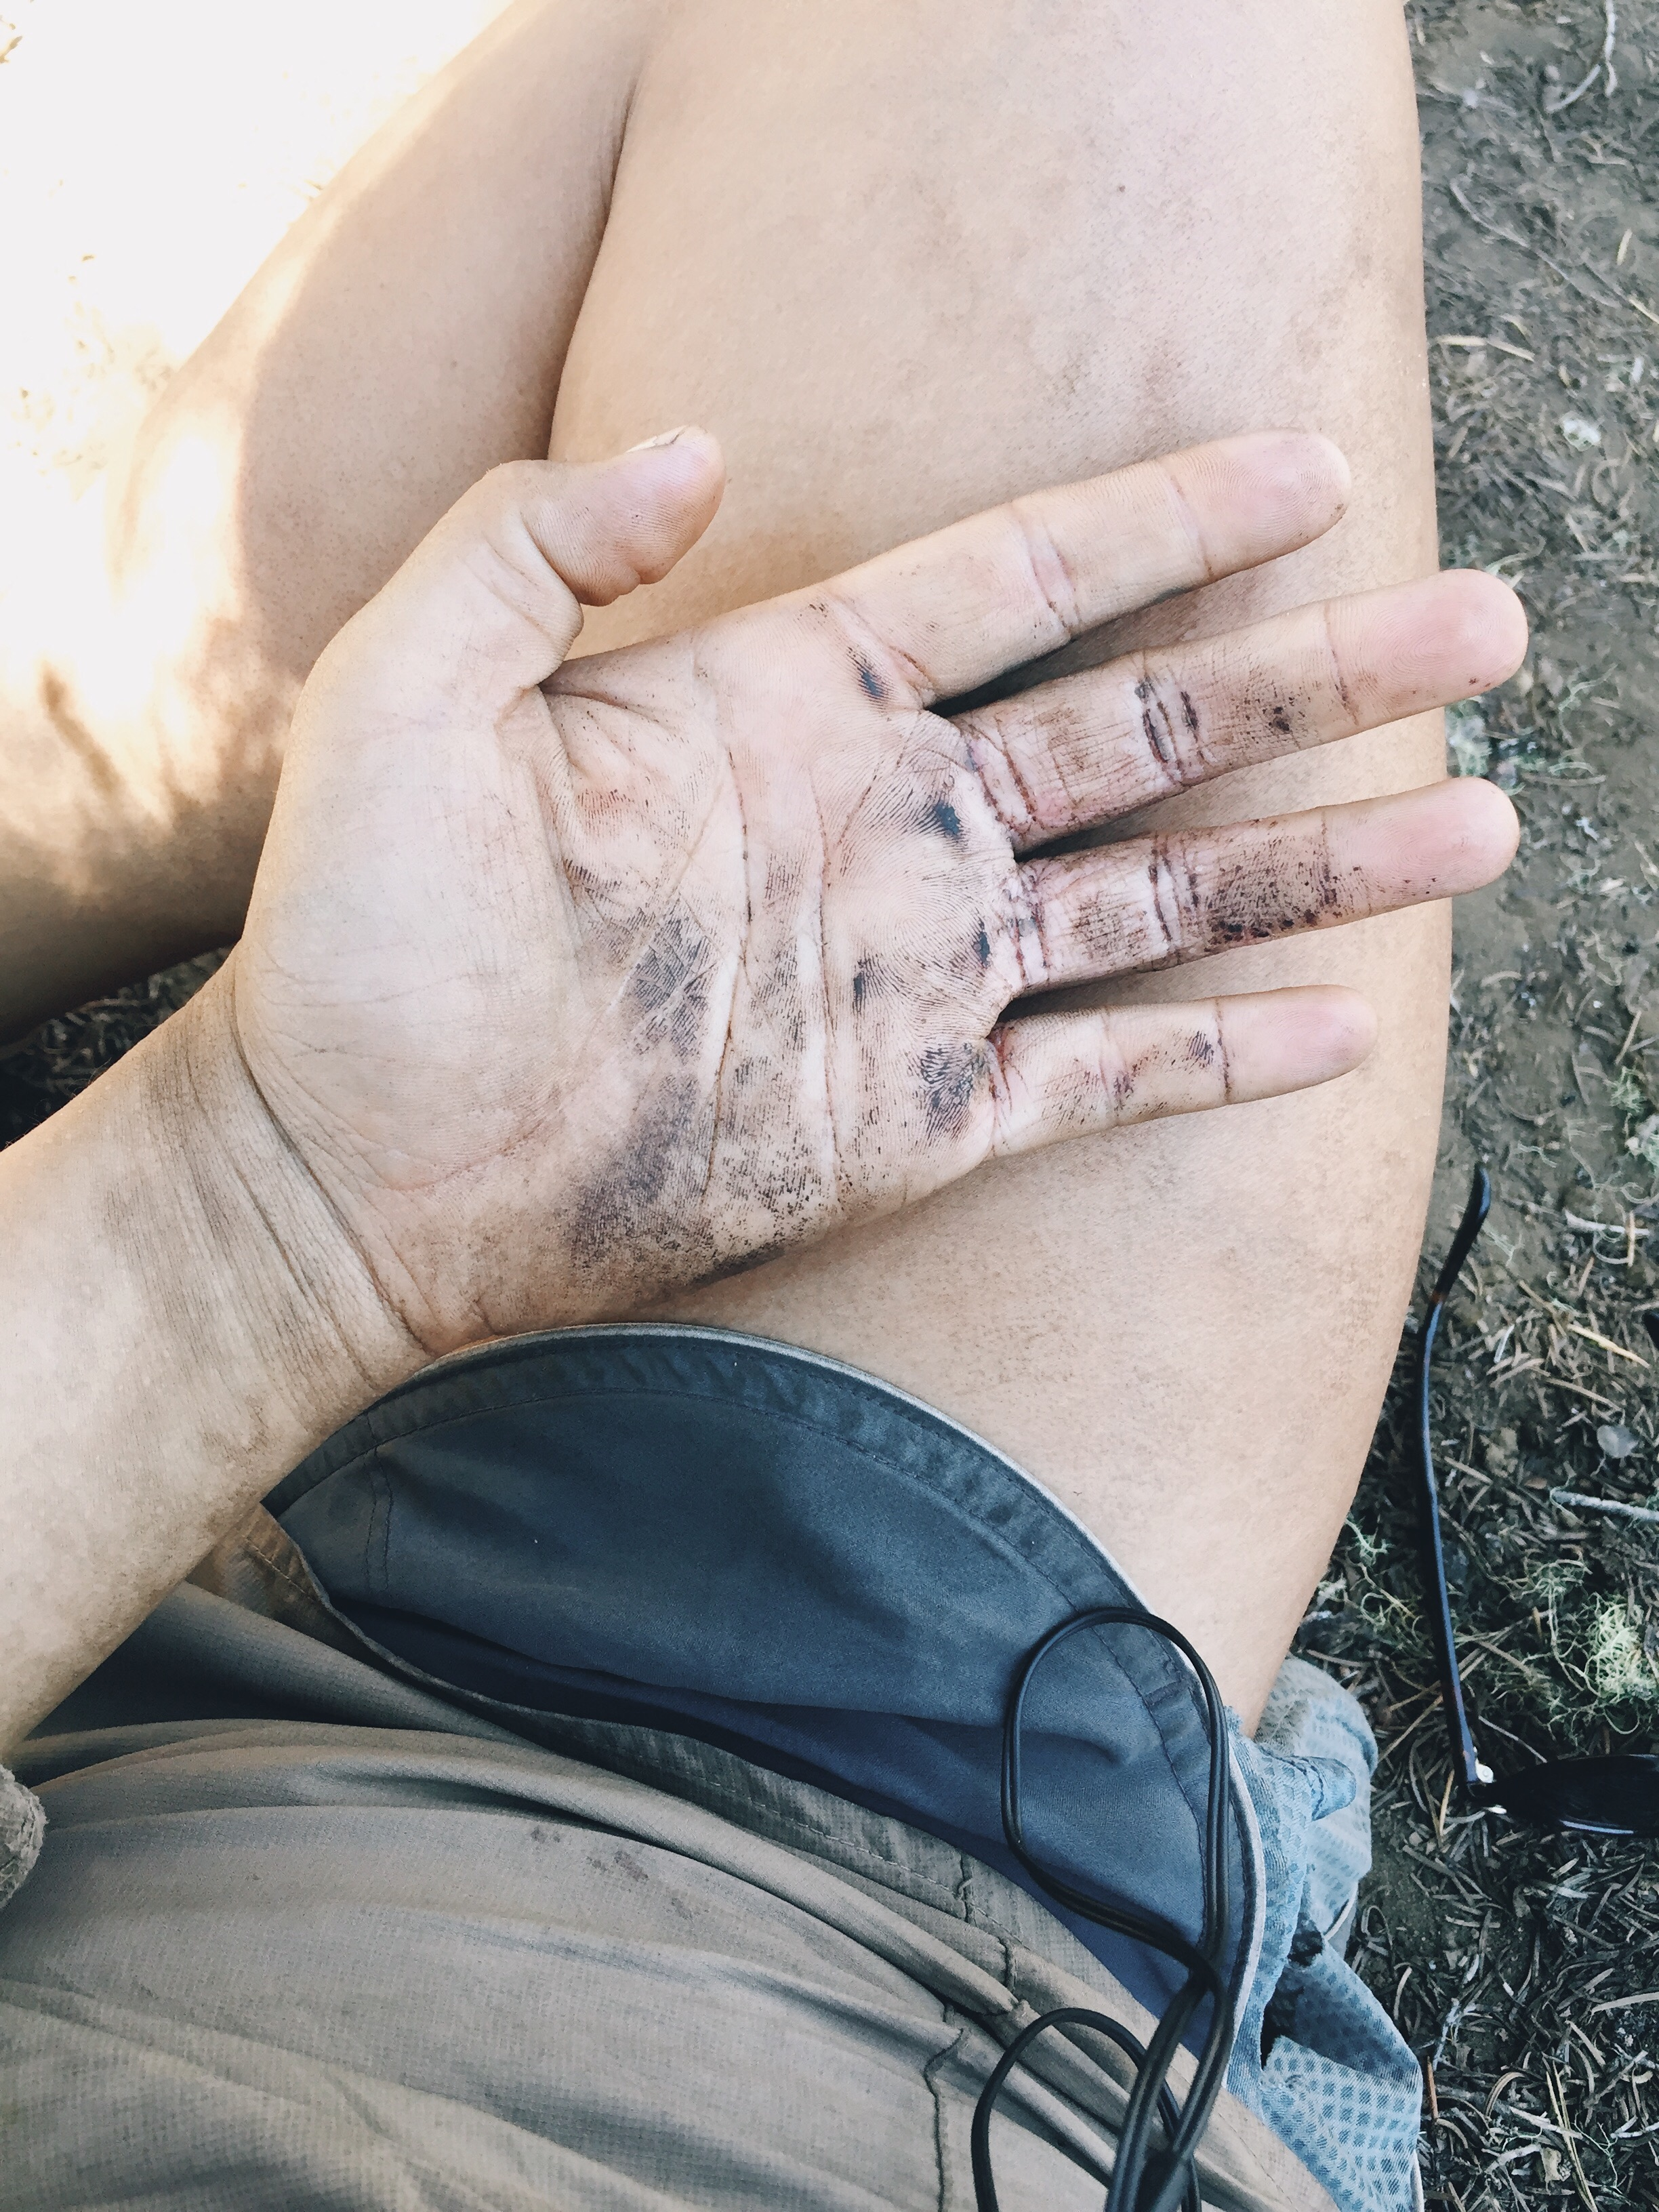 so dirty. Four miles to civilization.